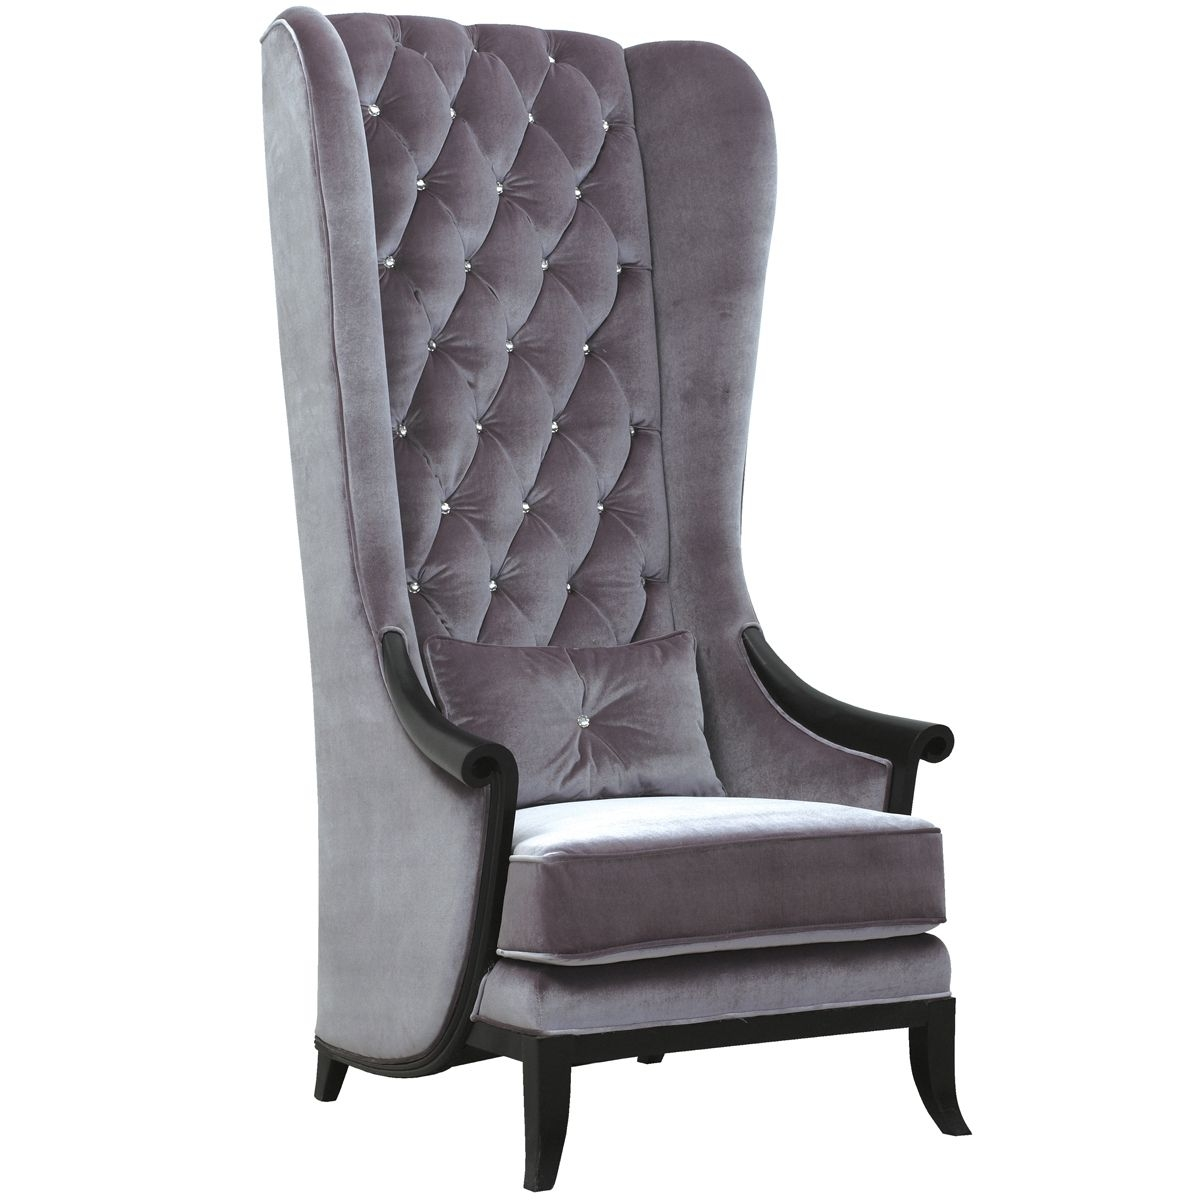 Ordinaire High Wing Back Chairs 1